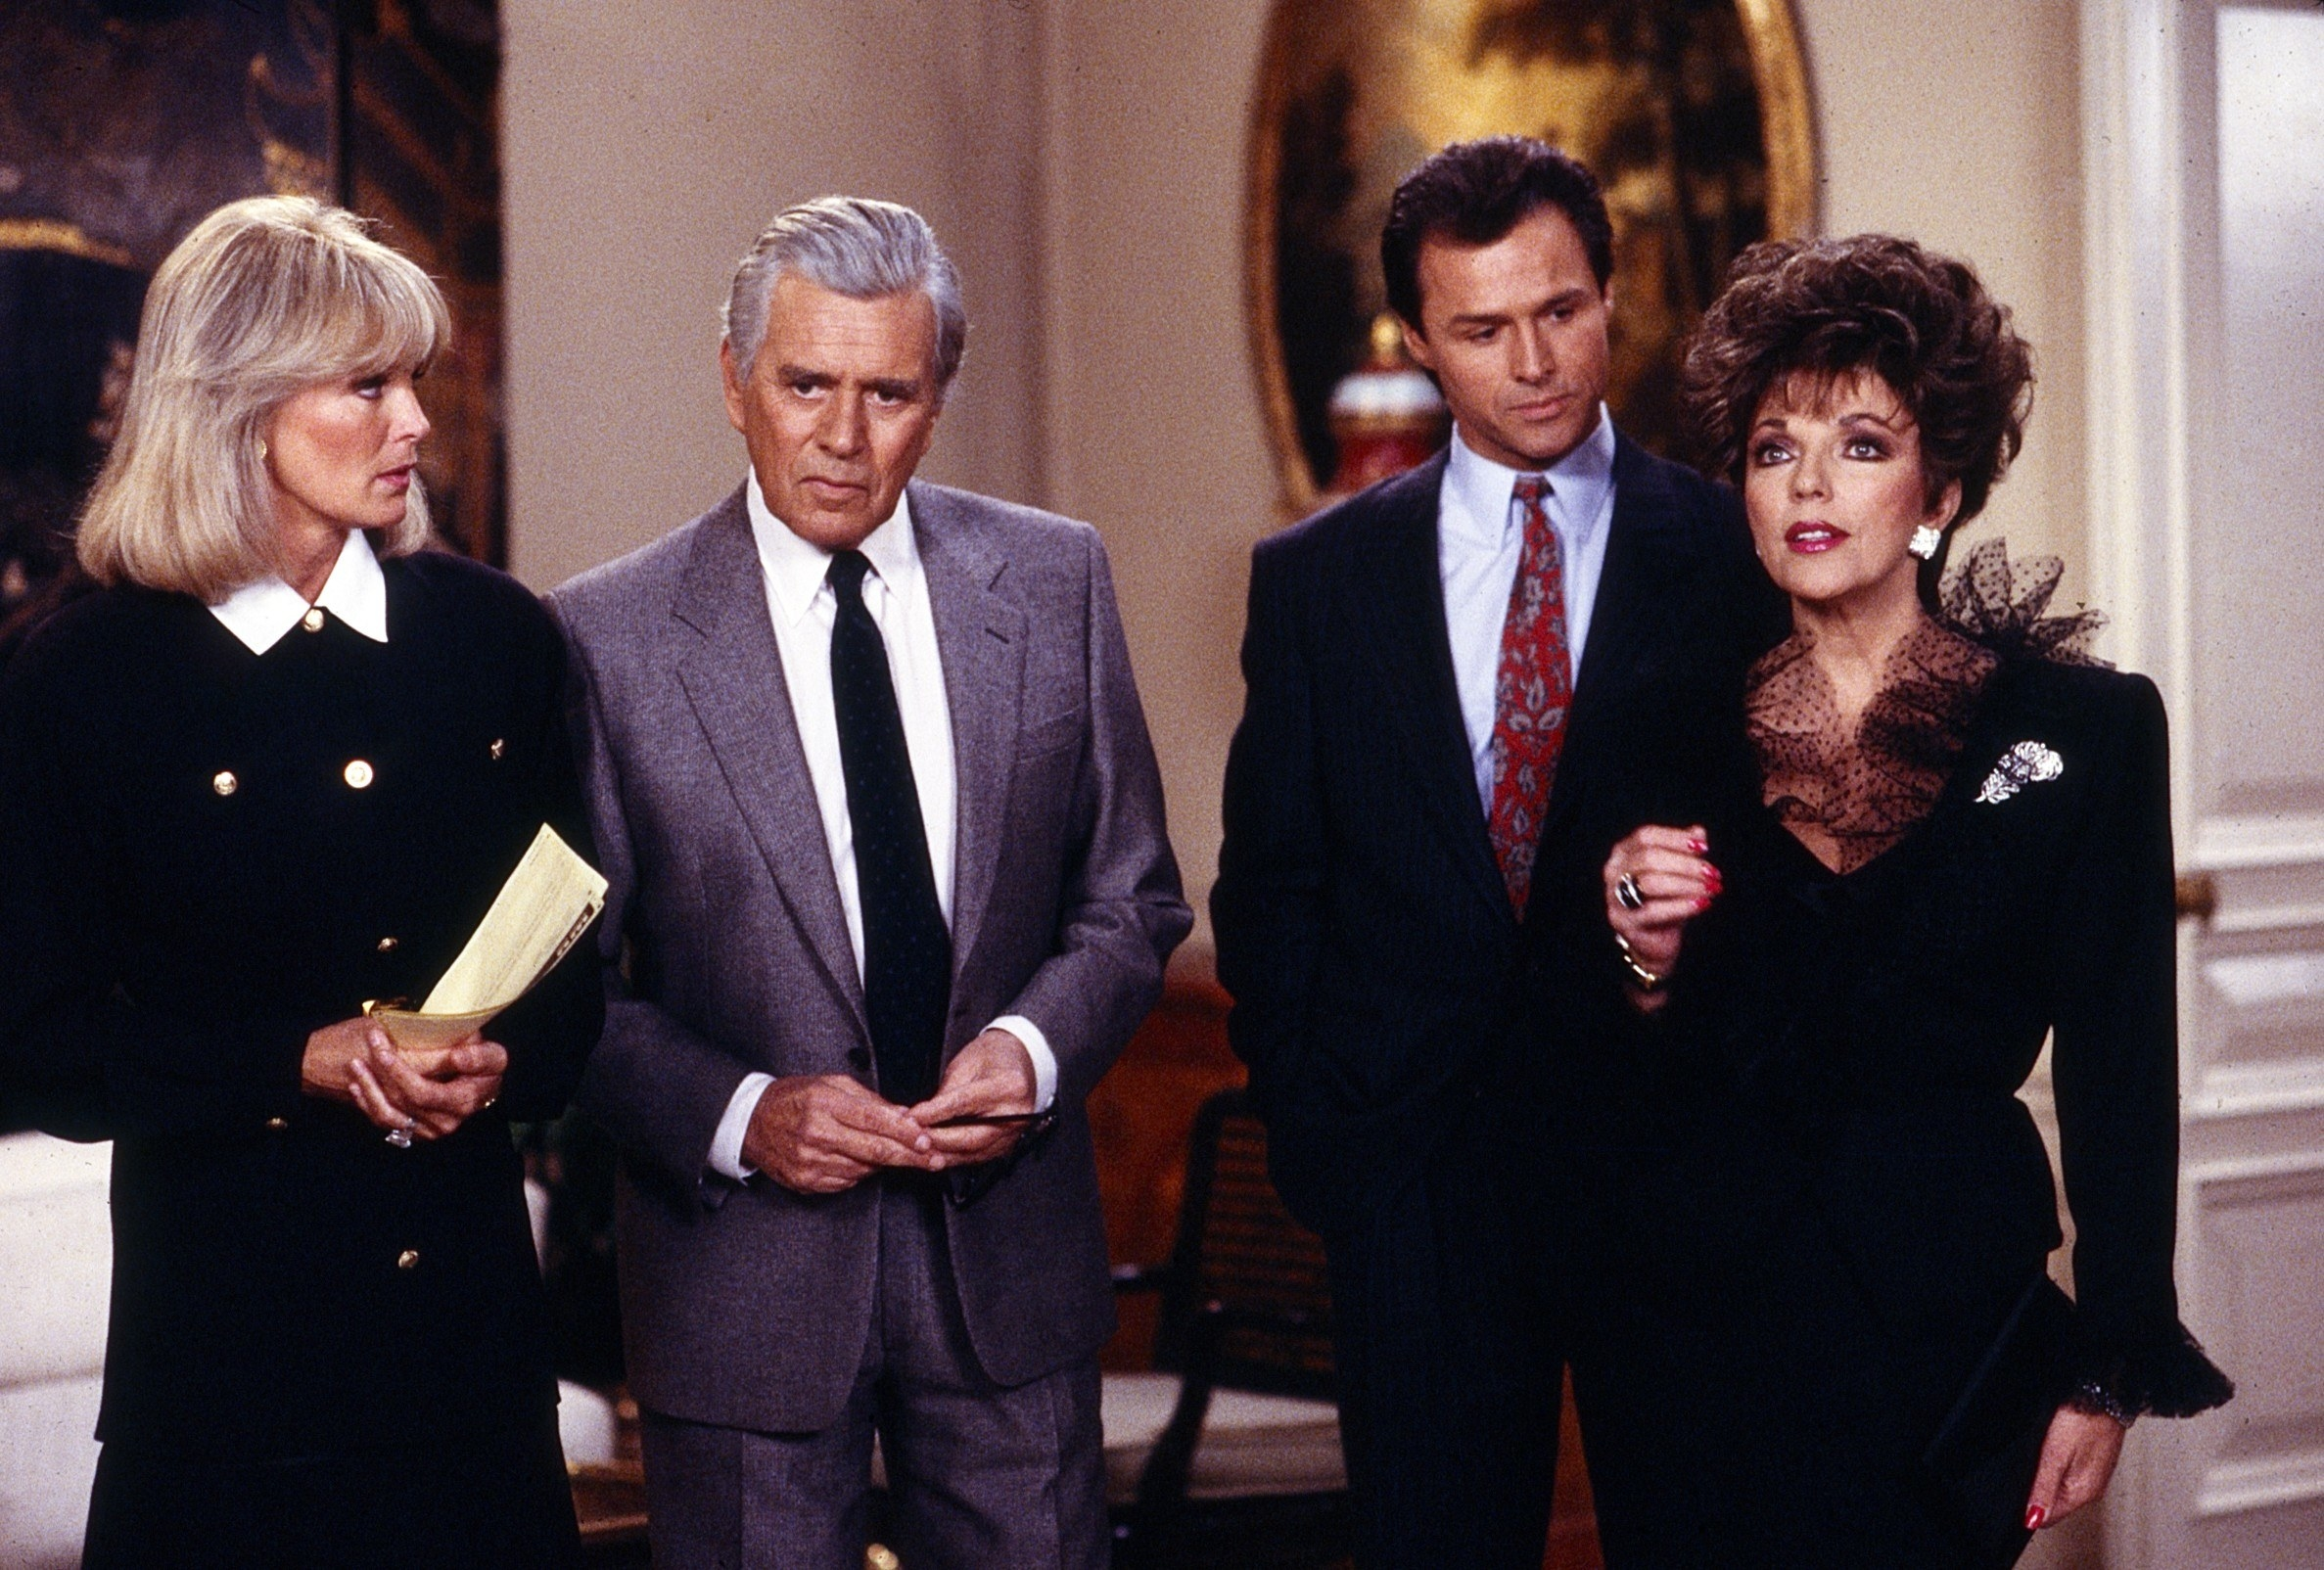 A photo from Dynasty of Crystal, Blake, Dex, and Alexis standing the living room of the Carrington manor